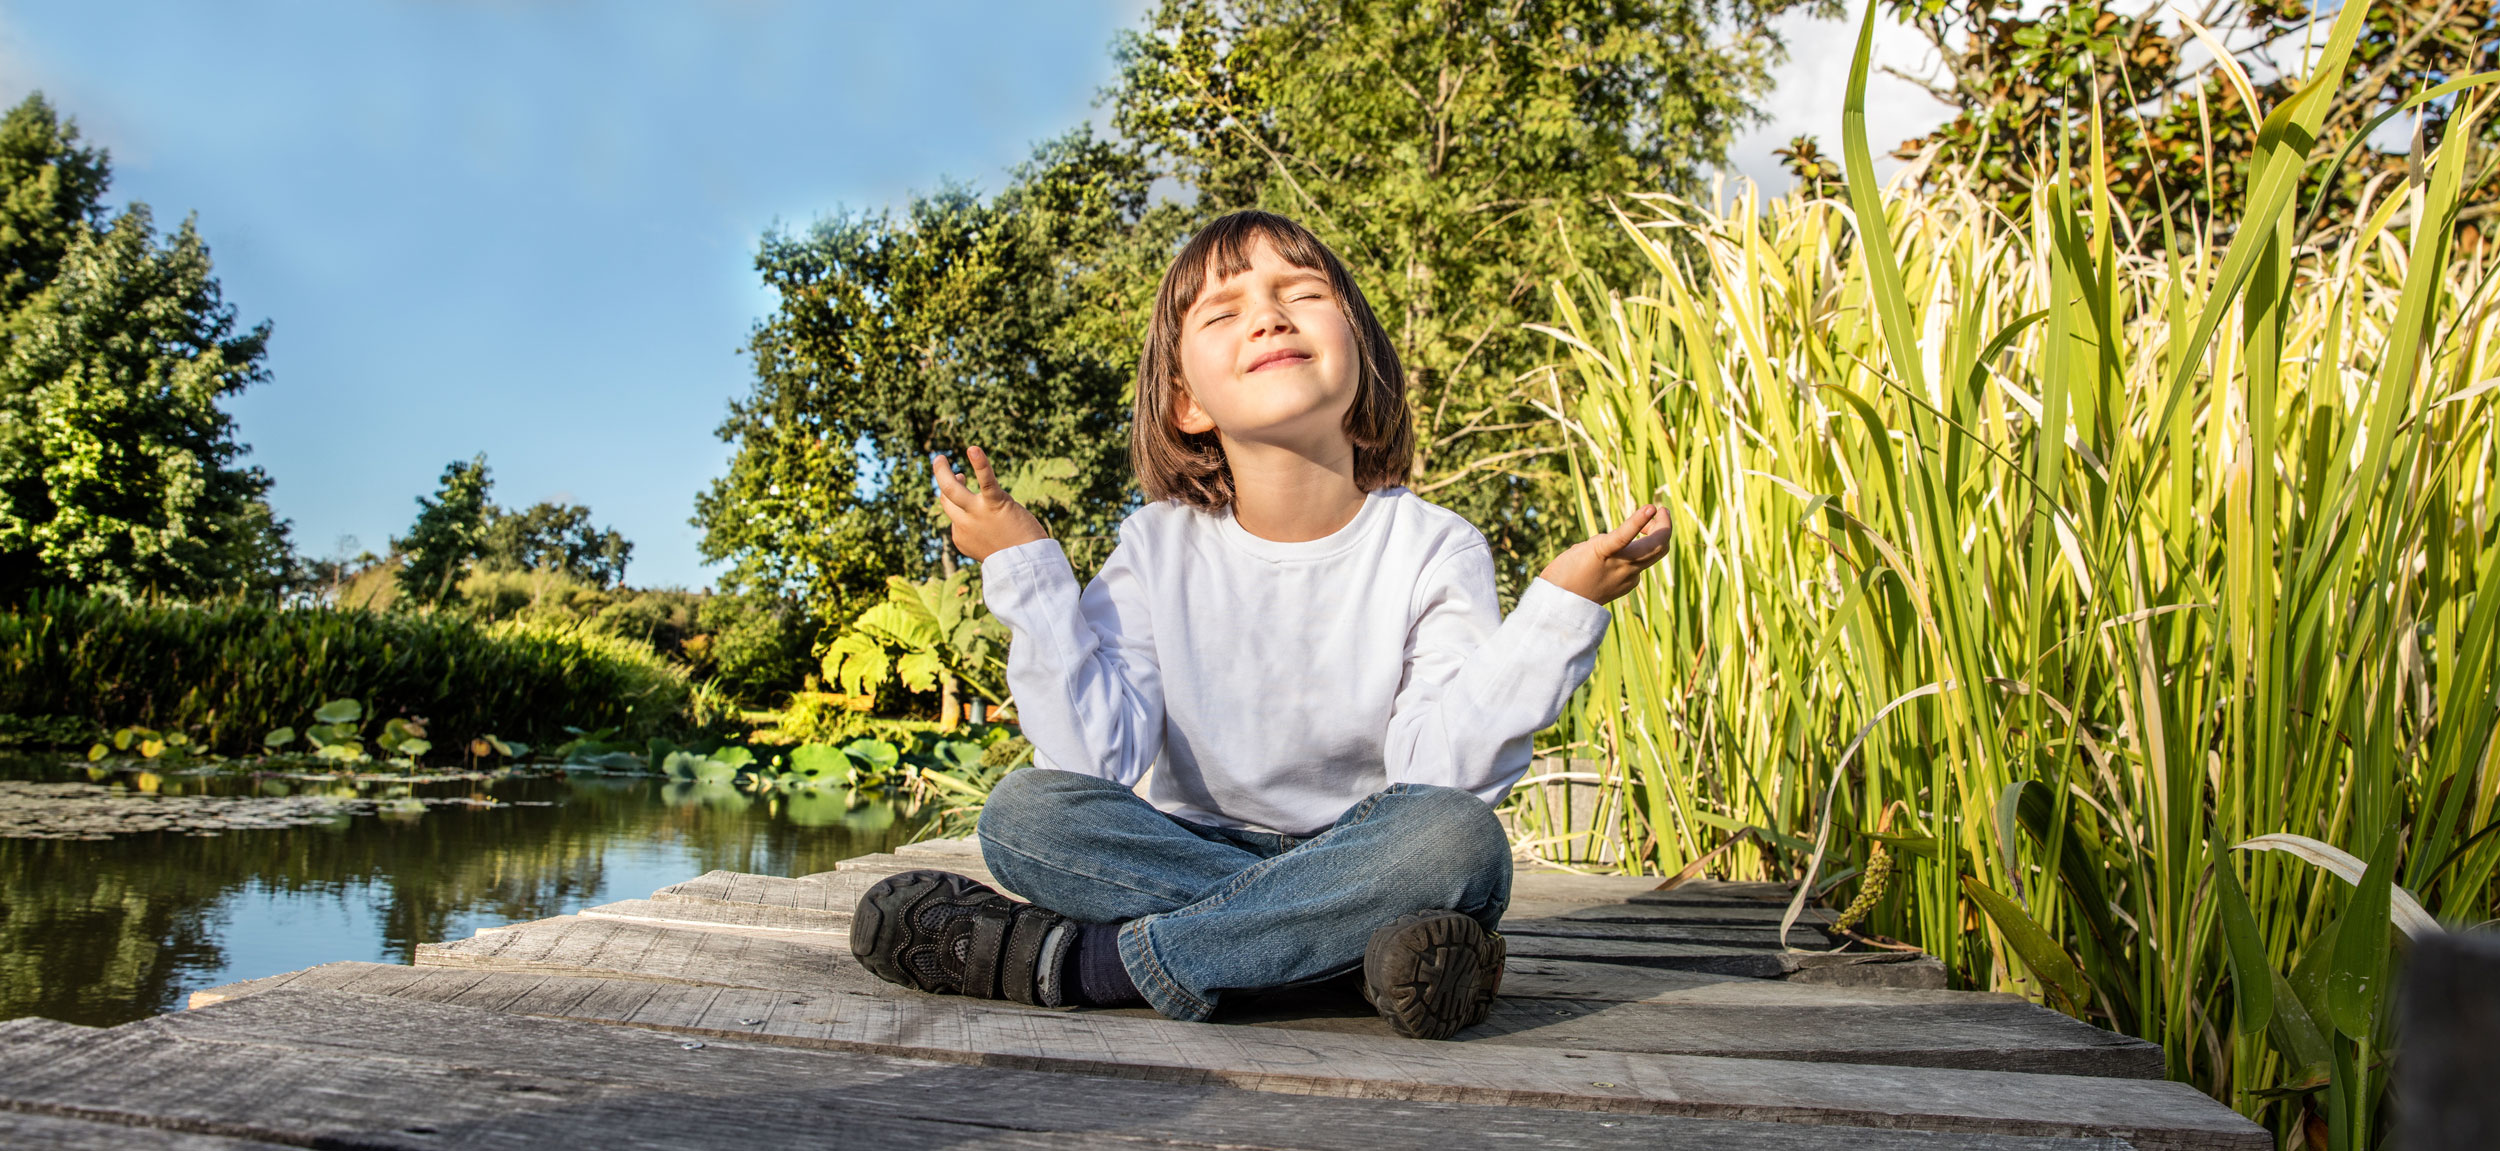 Benefits of mindfulness for children: -